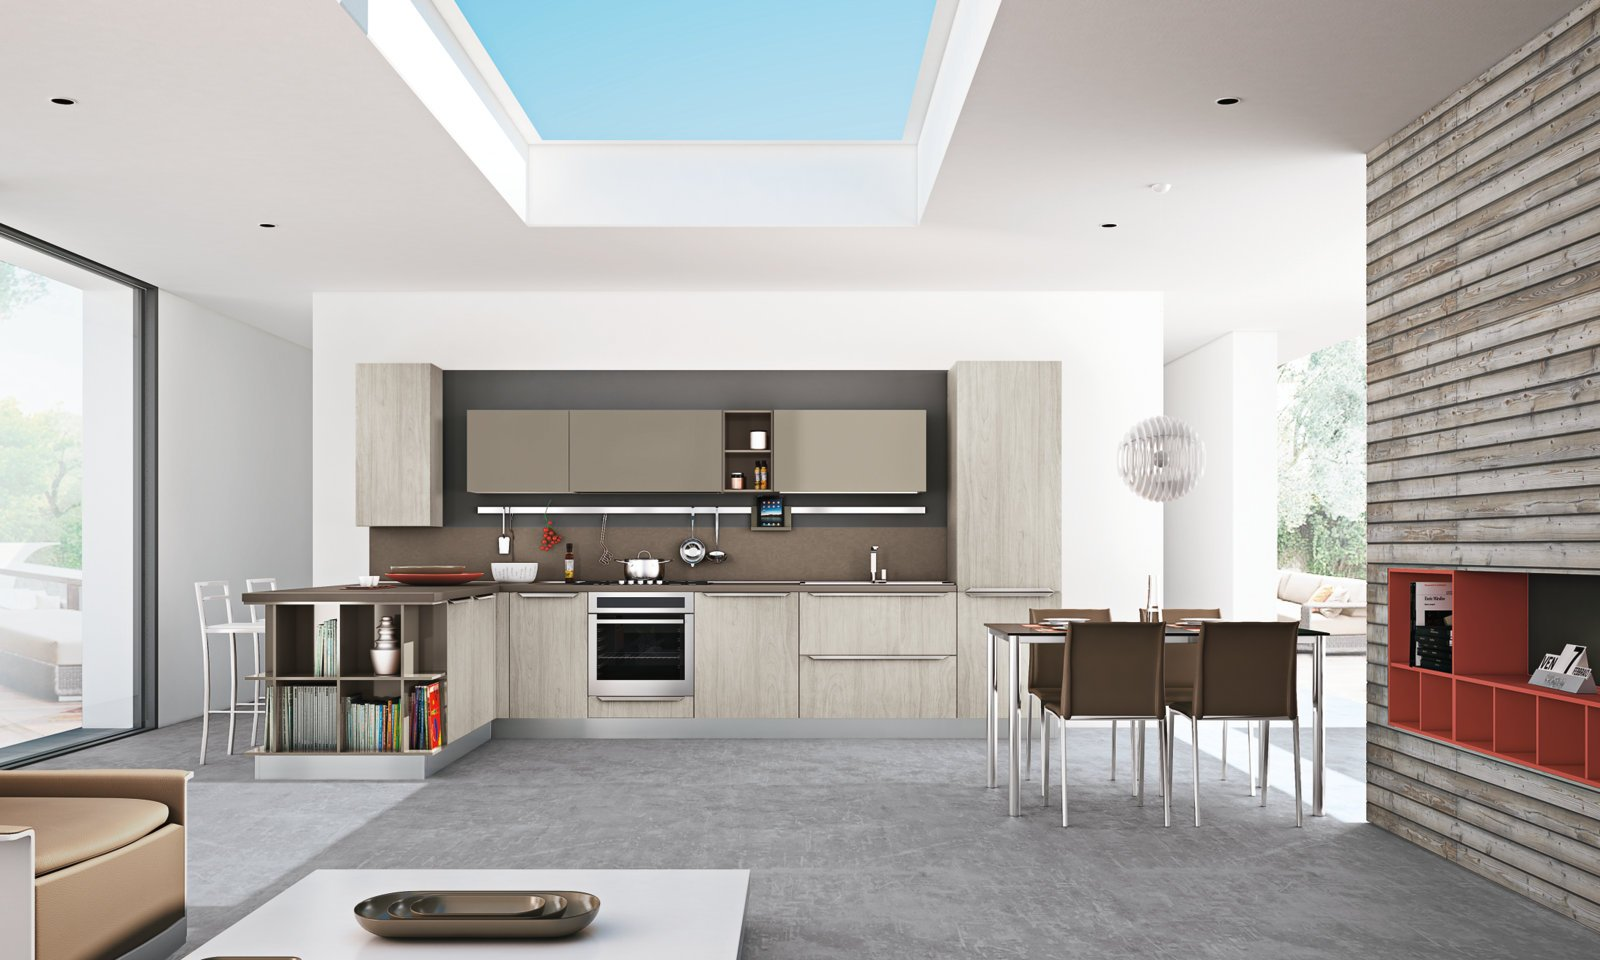 Cucina componibile con penisola gayla creo kitchens by - Cucina con penisola ...